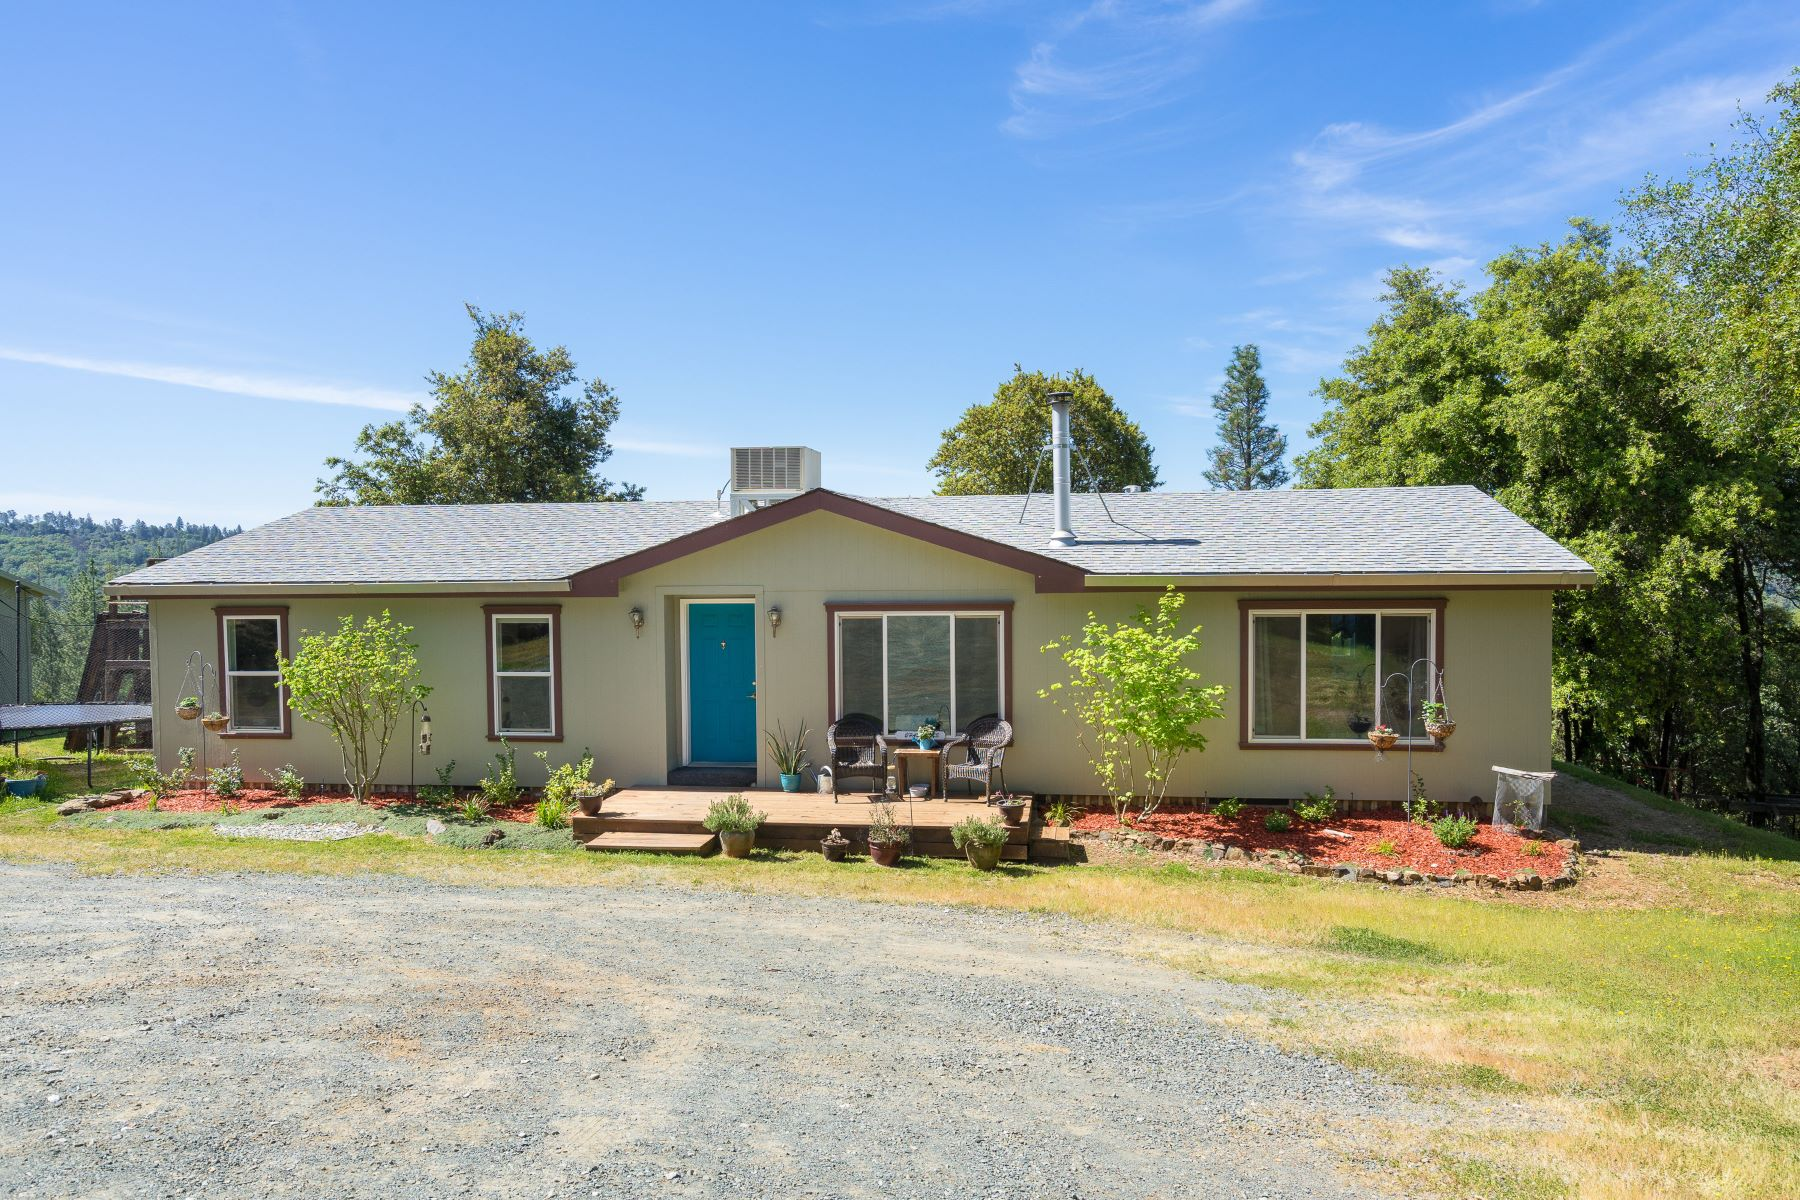 Single Family Home for Active at True Off The Grid Living 15670 Meadowlark Lane Sutter Creek, California 95685 United States